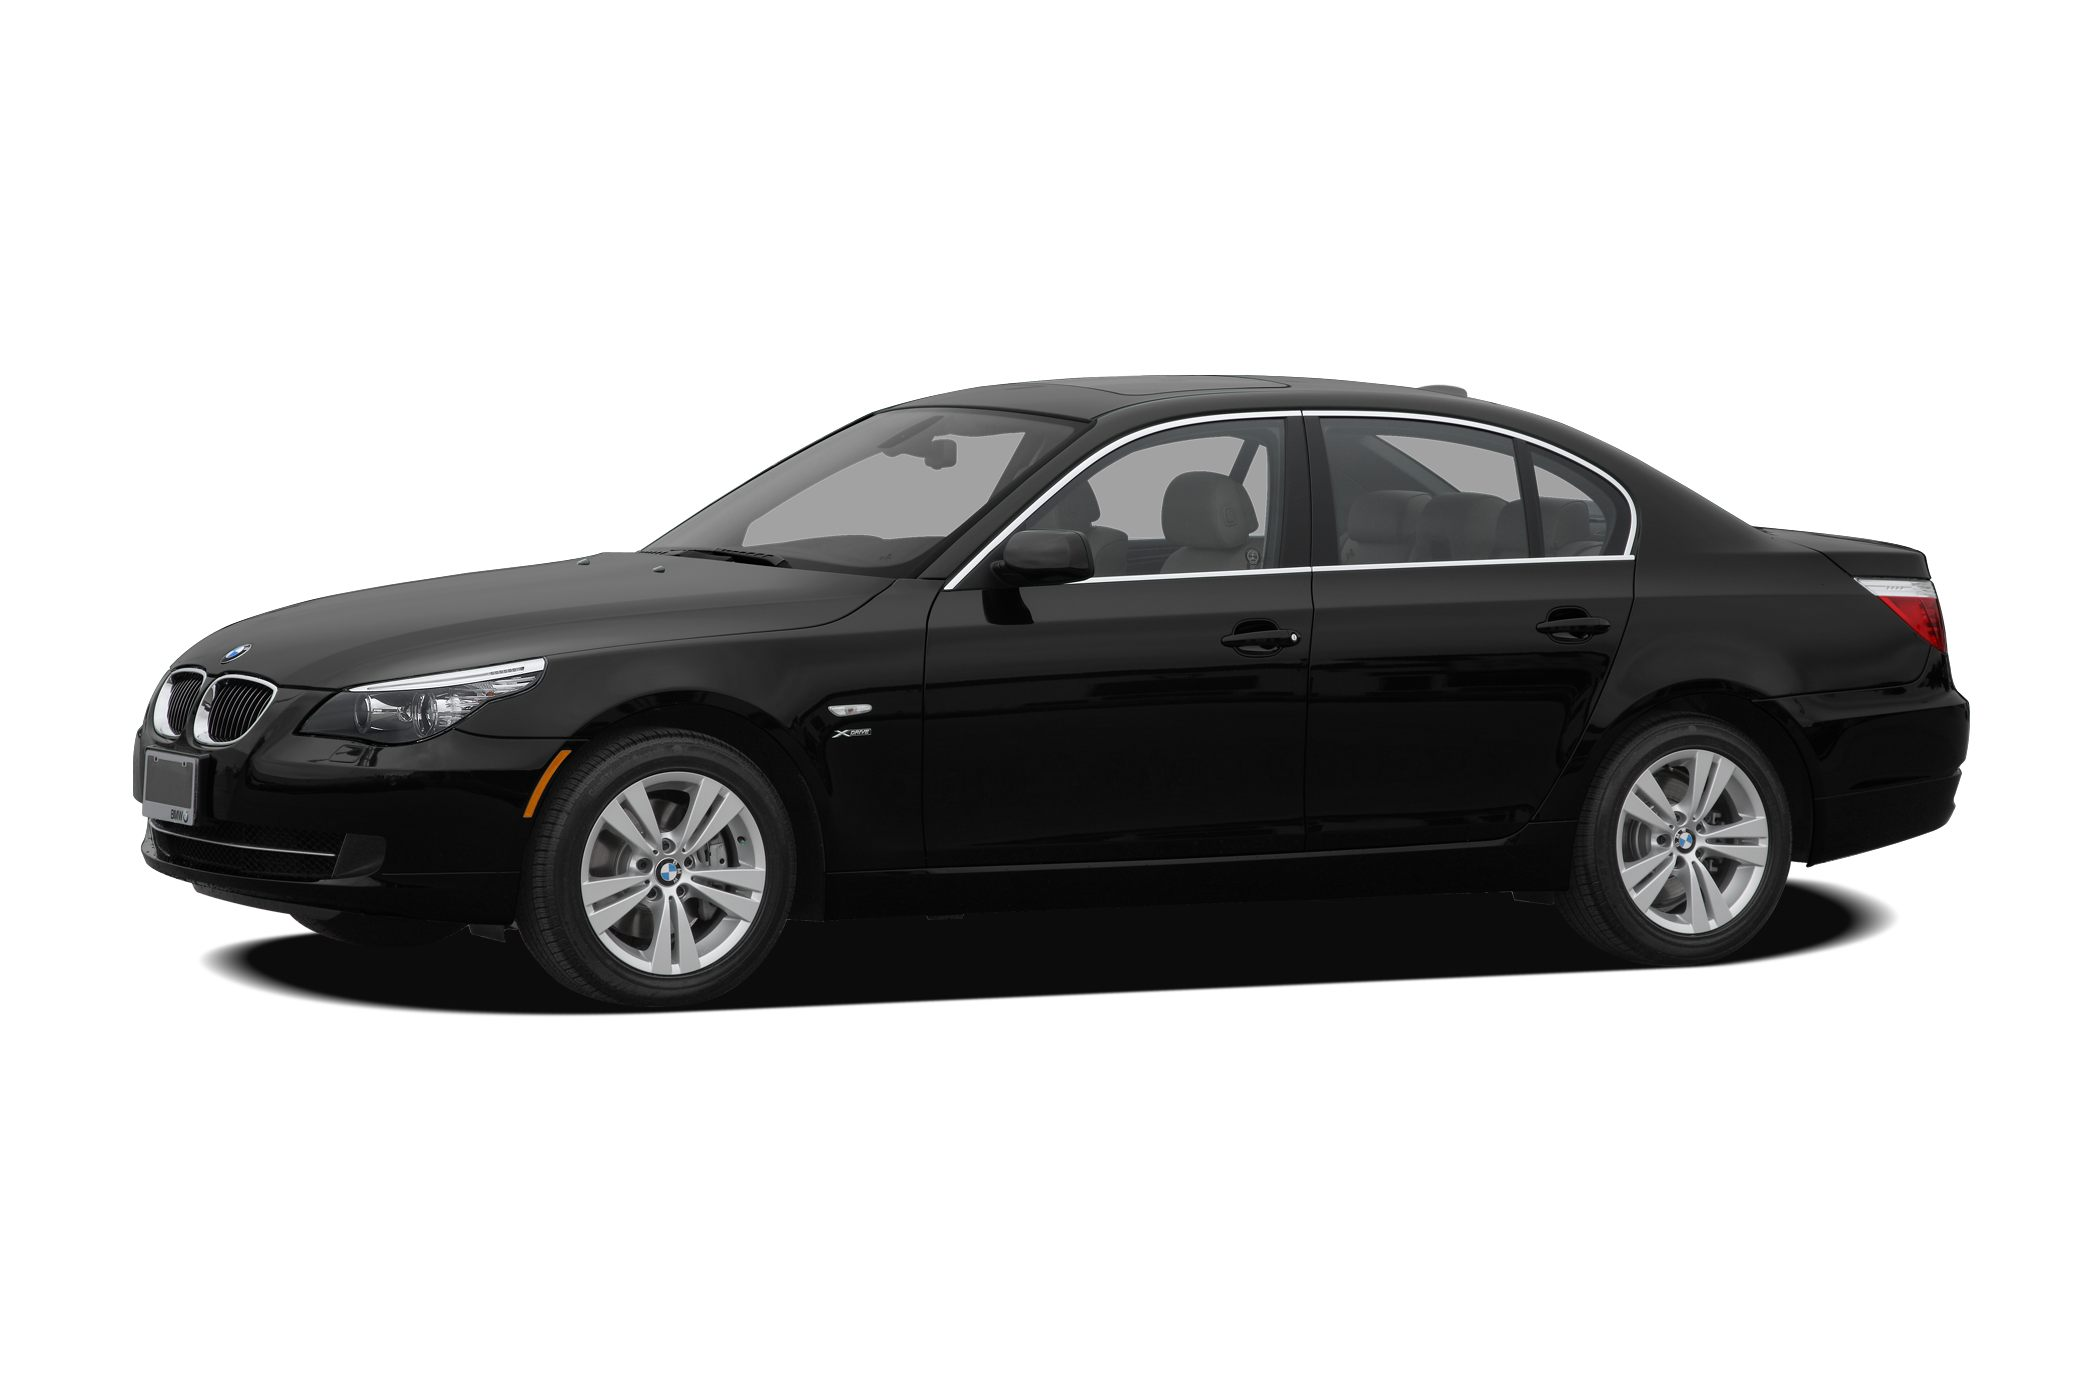 2008 BMW 5 Series 535i New Inventory There is no better time than now to buy this hot Luxury Vehi